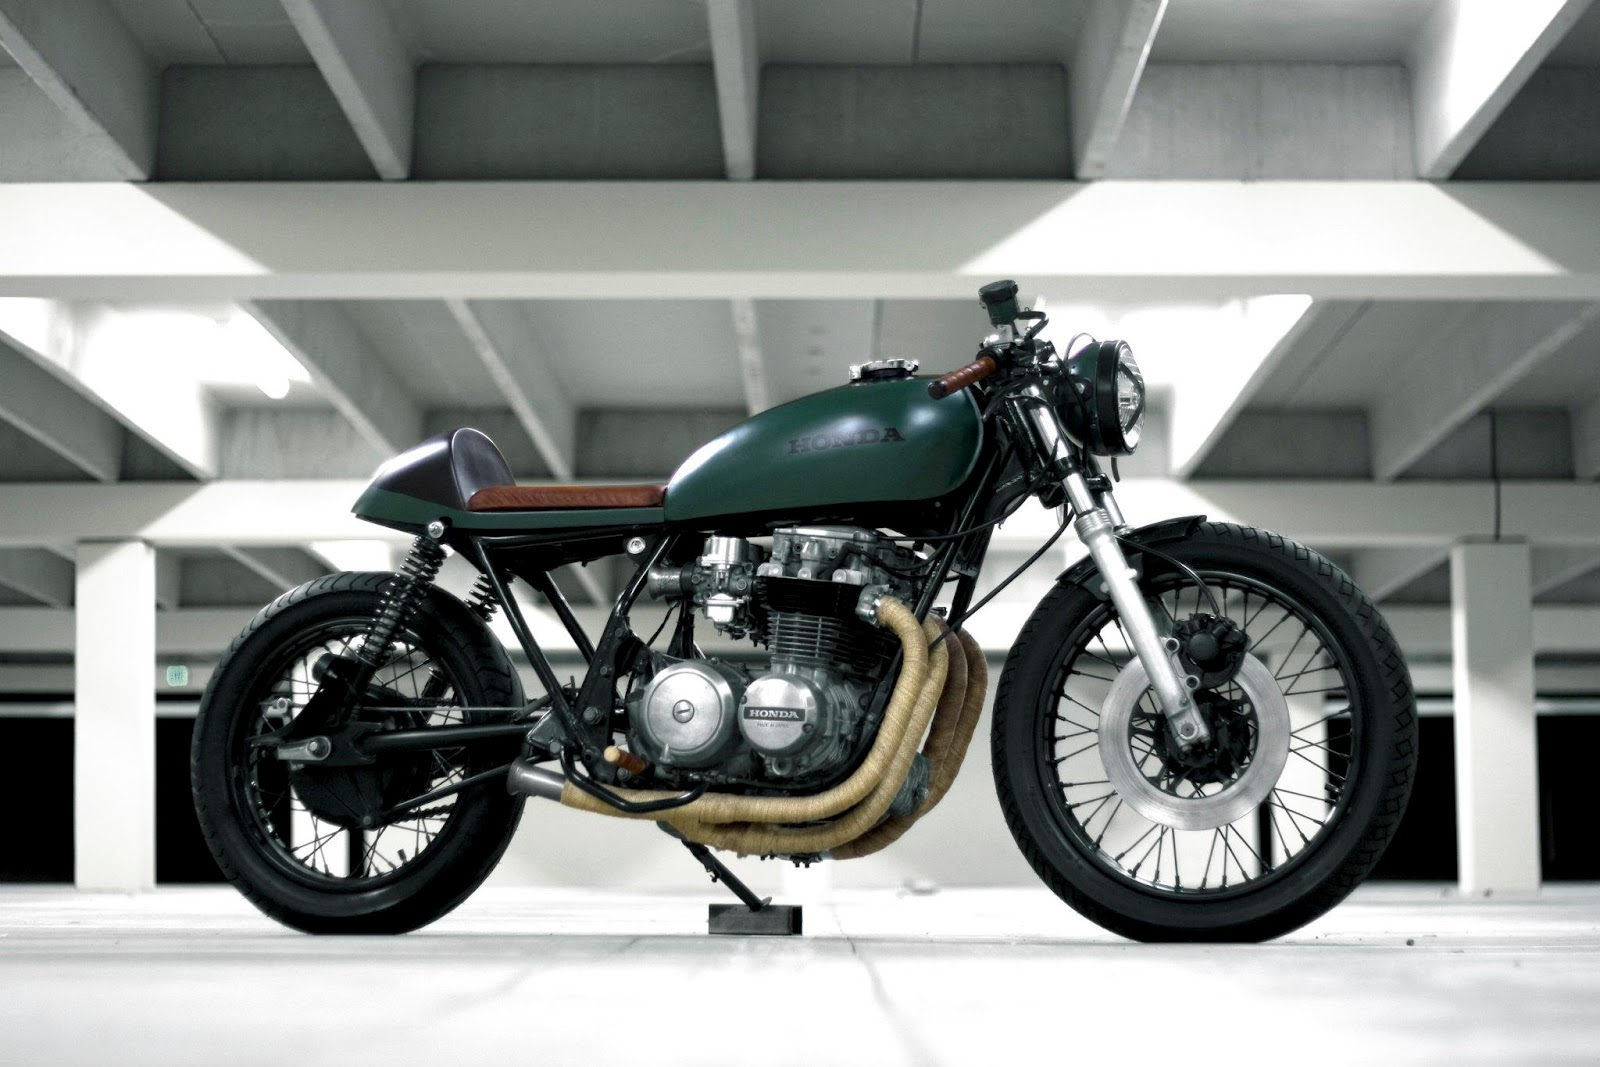 decided he d rather move saw introduction sc style remained an optionthrough rest run cb650 honda cb650 service repair workshop manual 1980 onward  [ 1600 x 1067 Pixel ]